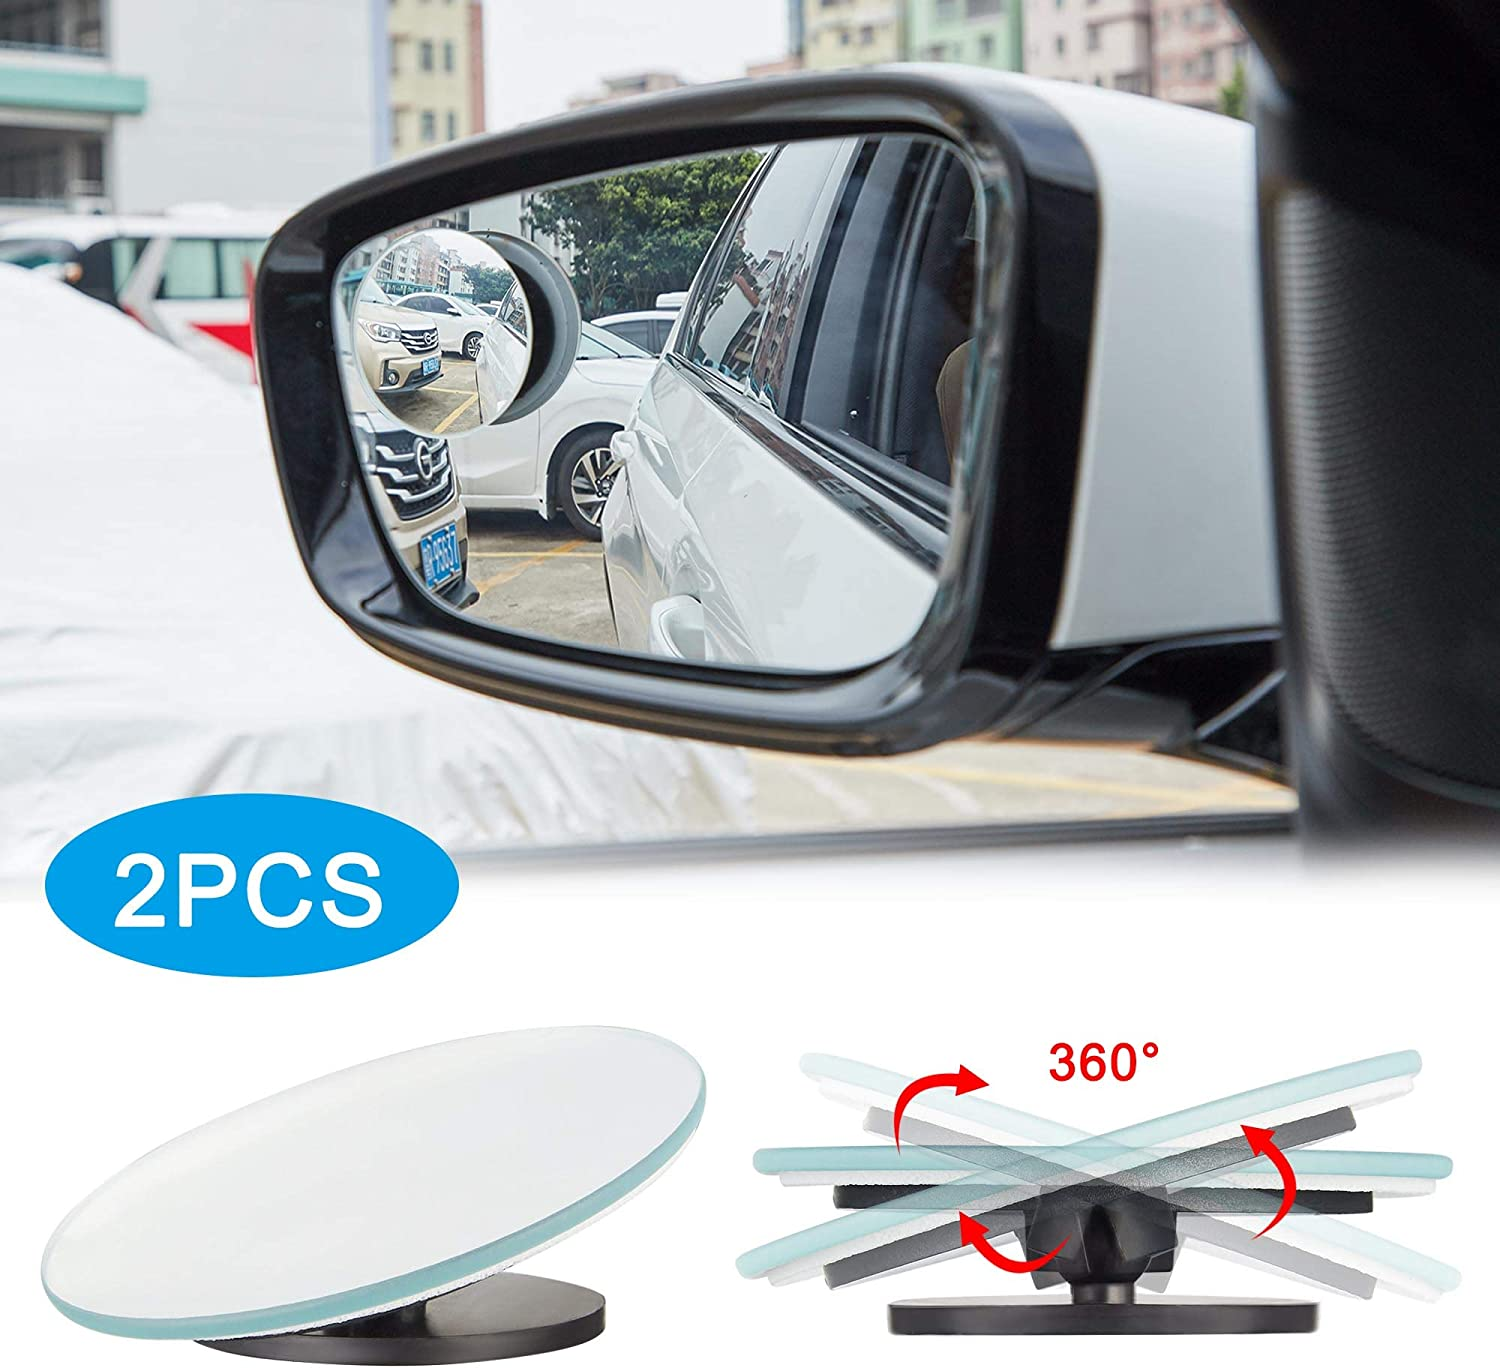 TOMALL 2Pcs Blind Spot Mirrors HD Glass Wide Angle Convex Rear View Mirror Blind Spot for Cars 360/° Adjustable Stick on Side Mirror Universal Exterior Blind Spot Mirrors Accessories